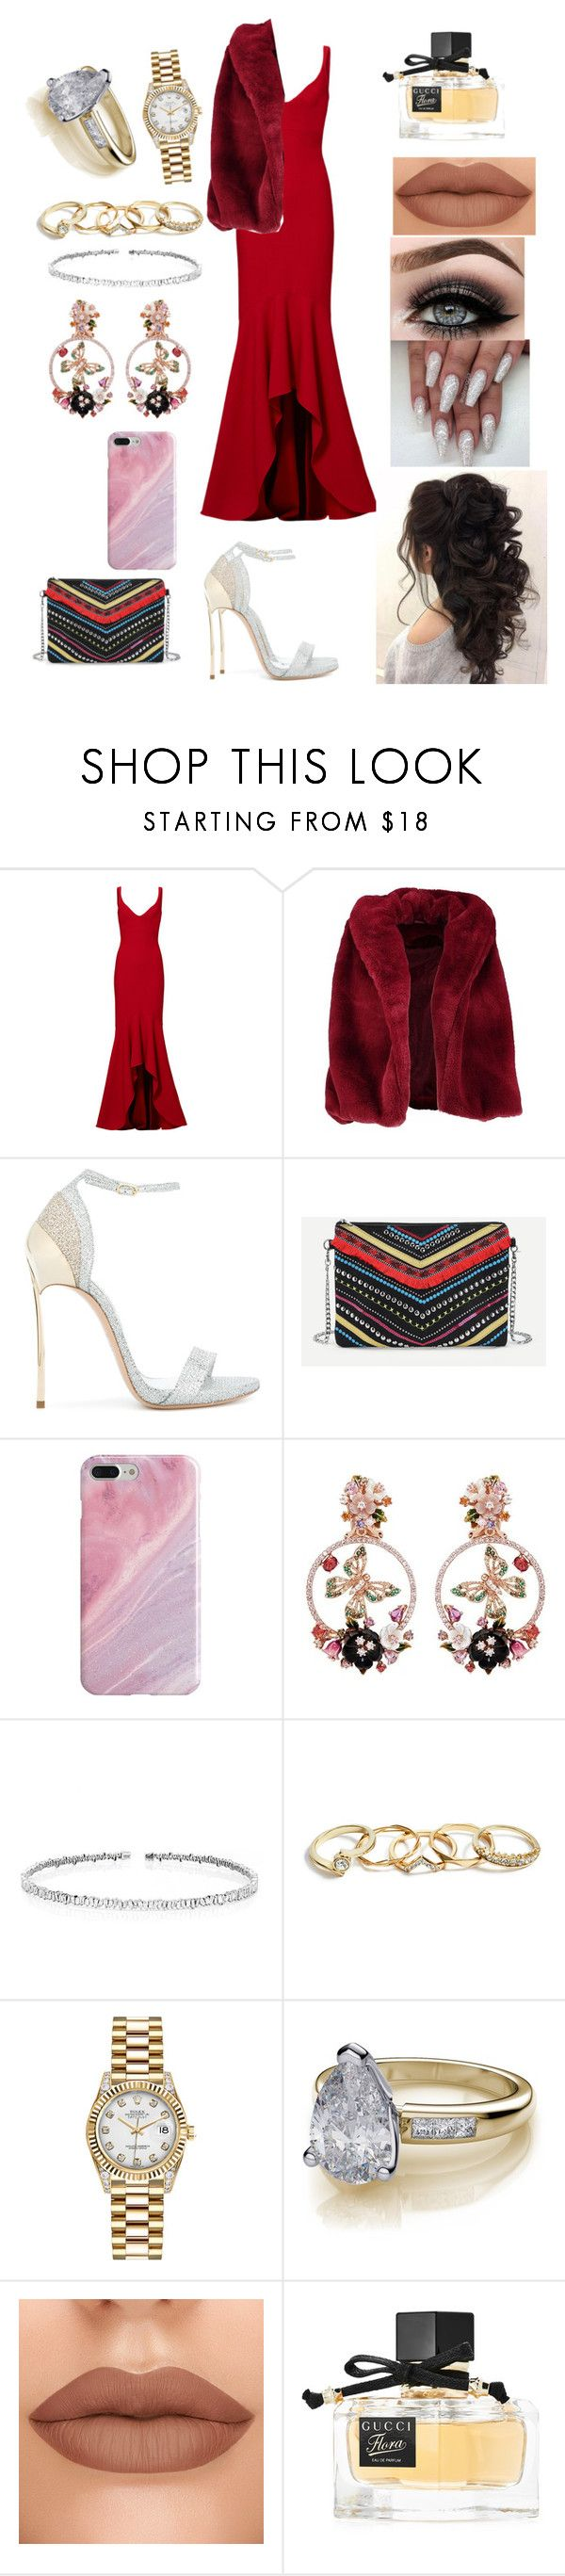 """Red never makes a bad impression"" by jazmin-576 on Polyvore featuring moda, Carmen Marc Valvo, Boohoo, Casadei, Recover, Anabela Chan, Suzanne Kalan, GUESS, Rolex y ASAP"